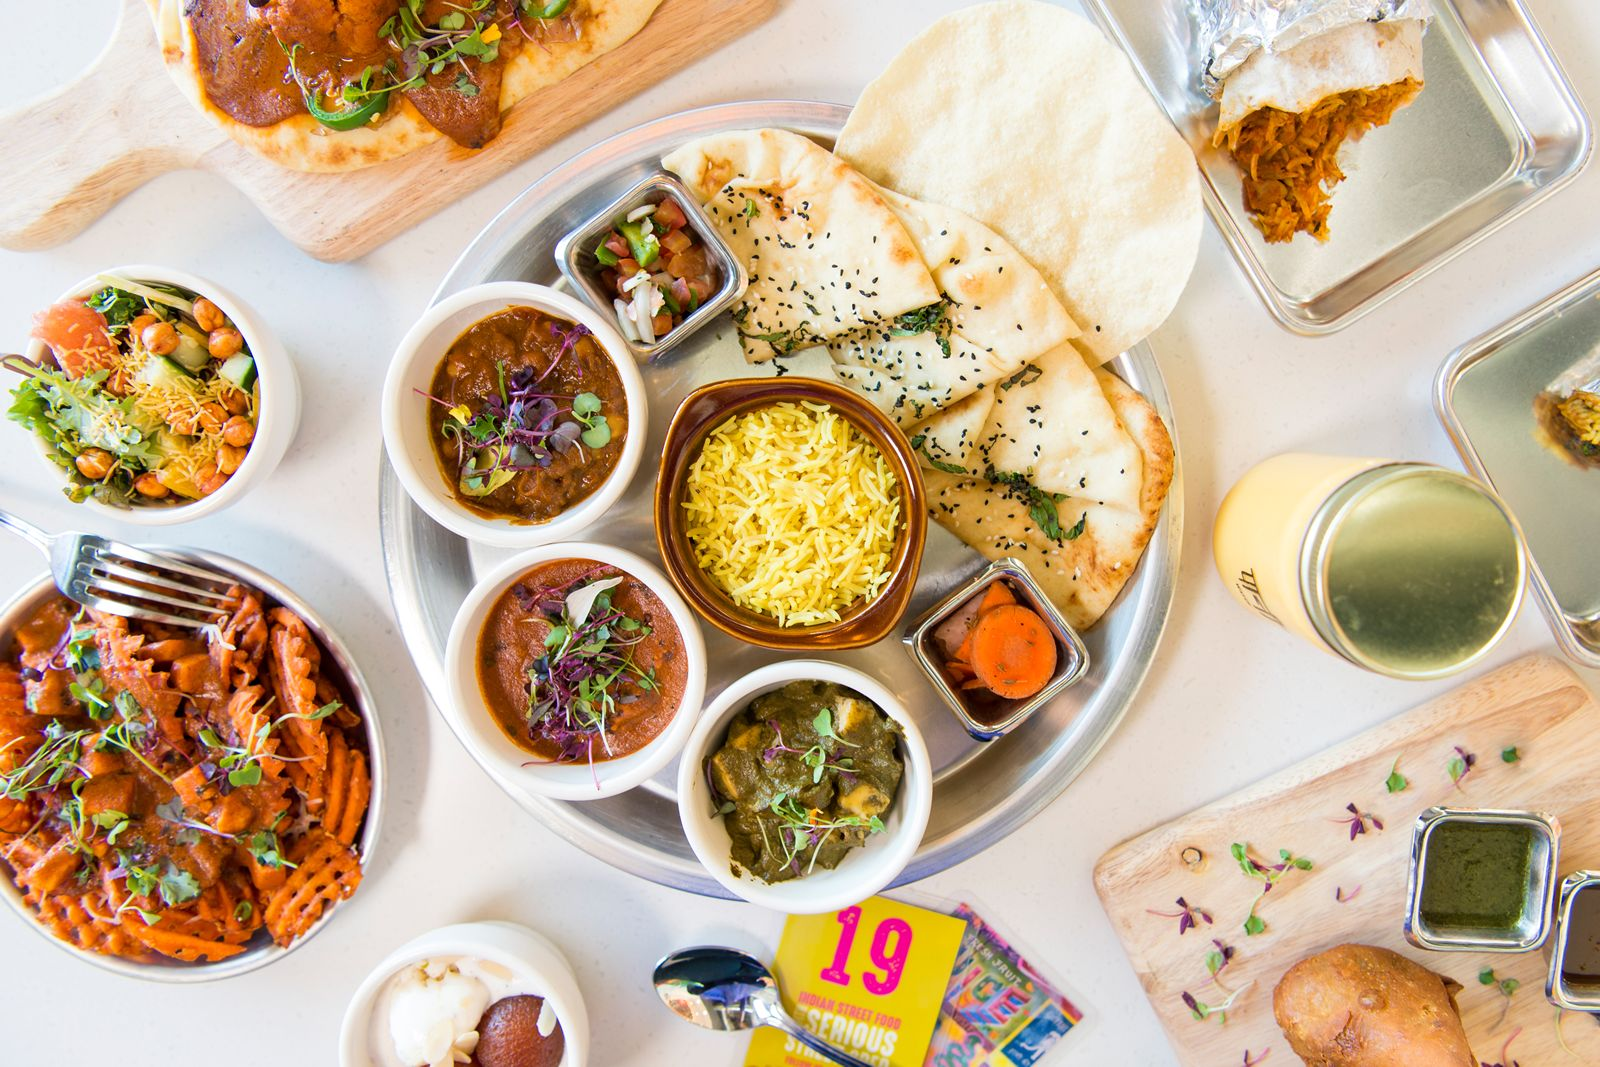 Curry Up Now, the largest and fastest growing Indian fast casual in the U.S., has announced a multi-unit franchise deal that will bring its innovative and approachable Indian cuisine New Jersey, with the first location opening as soon as six months.